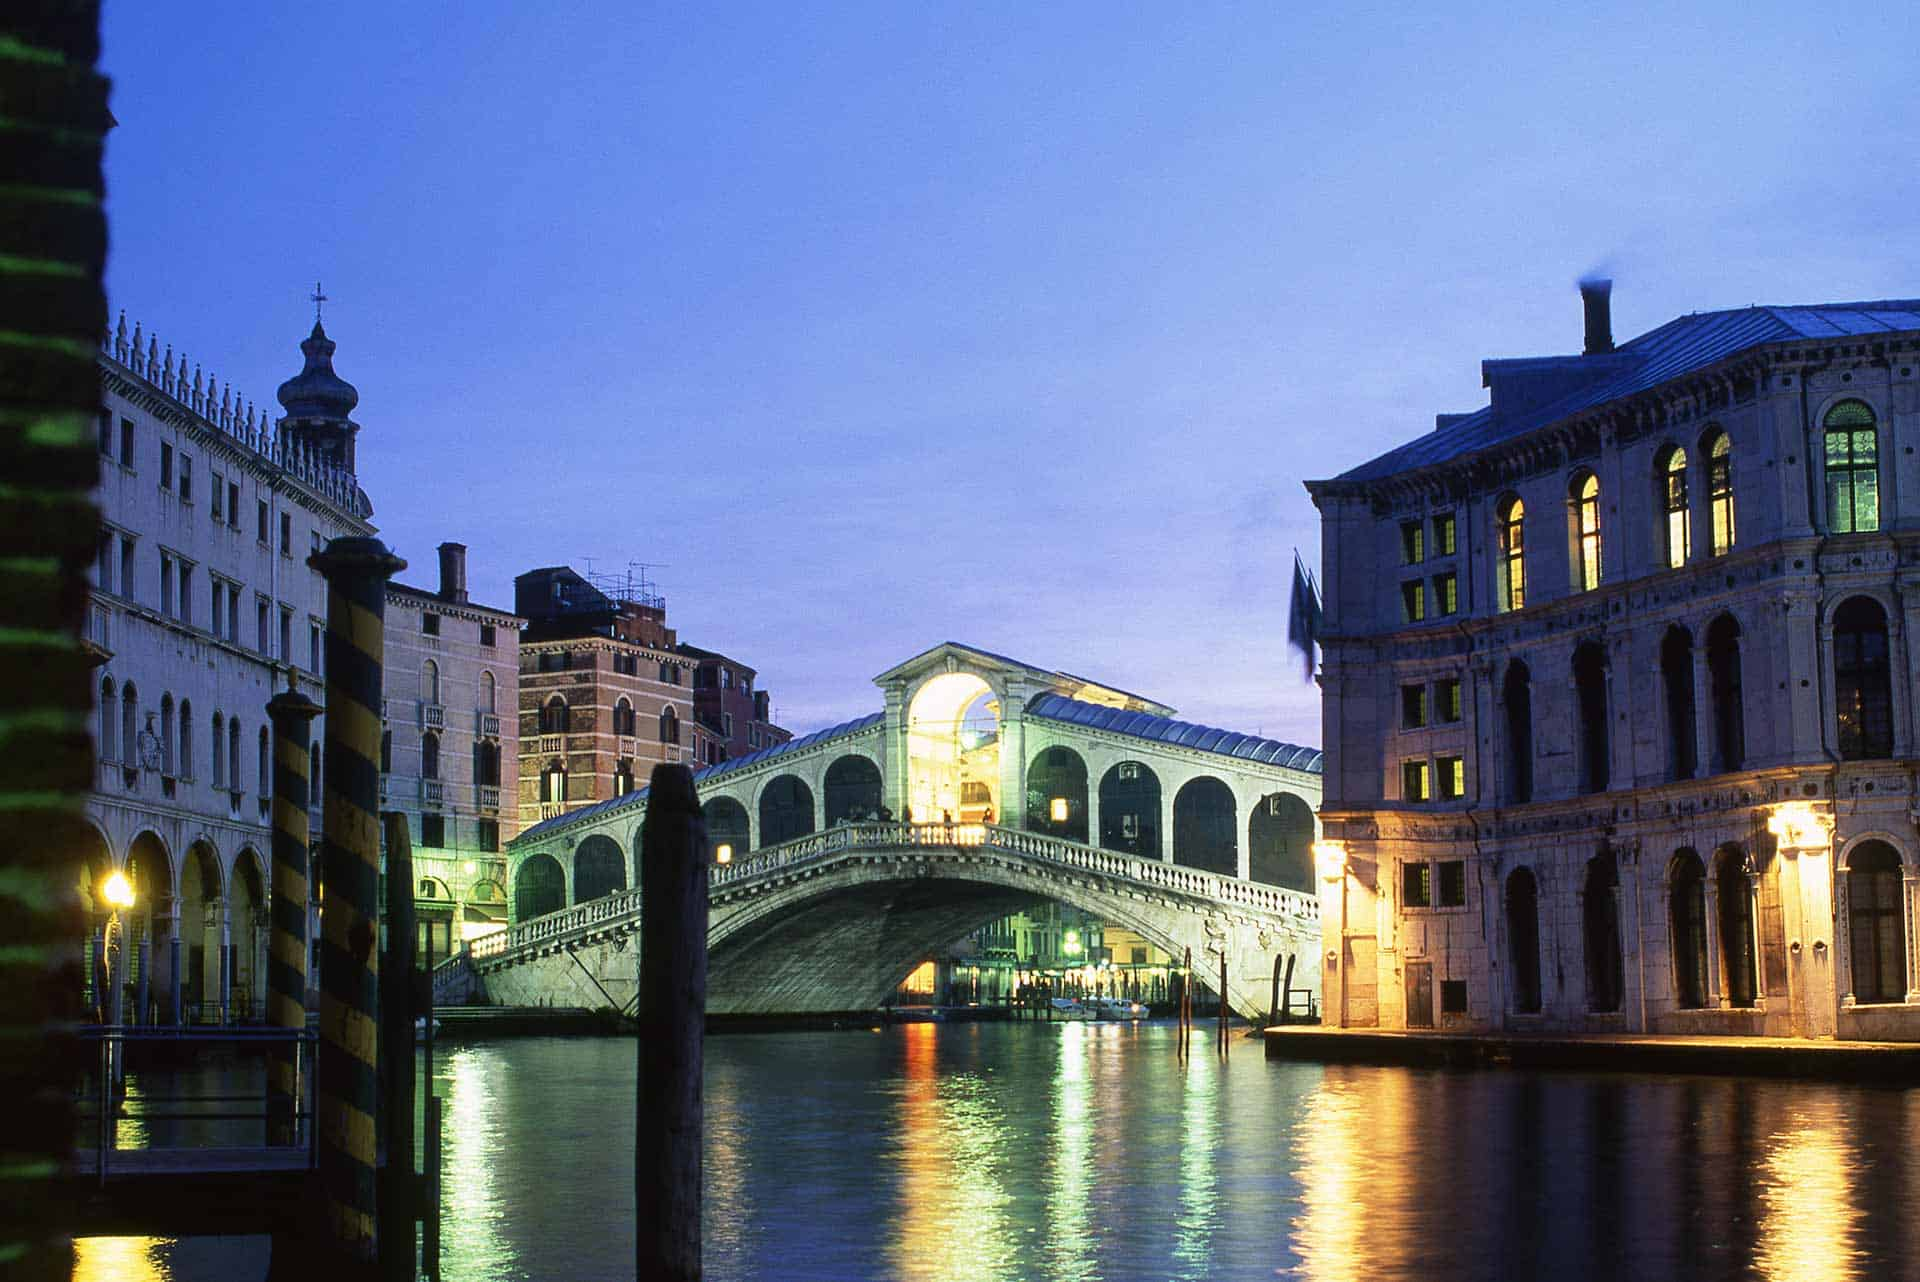 Image of the Rialto Bridge from Cannaregio in Venice